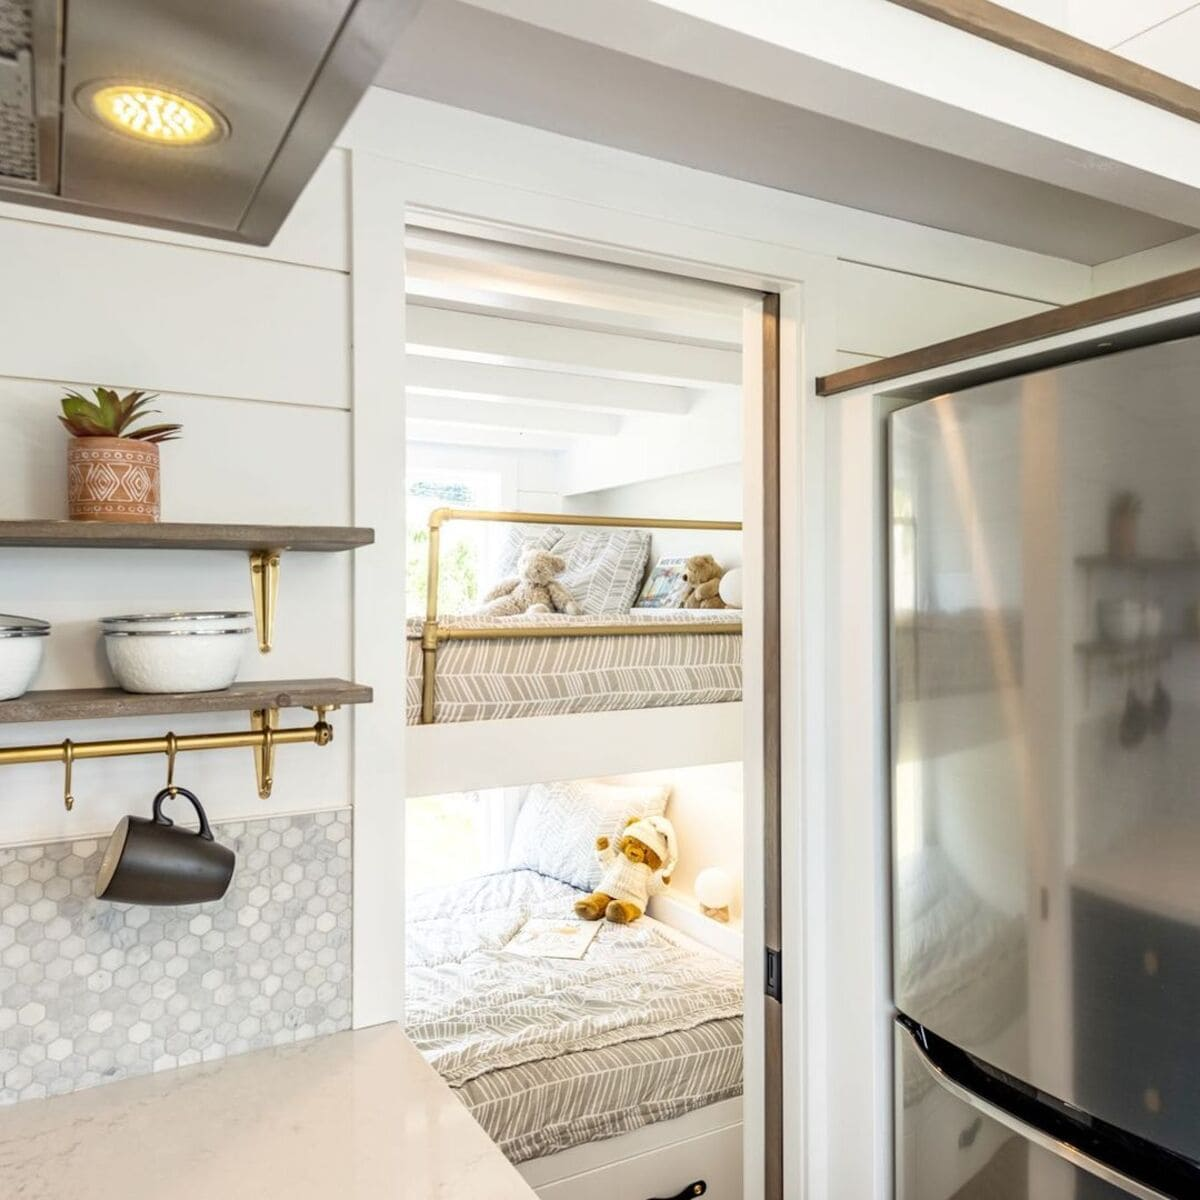 magnolia tiny house 1 1 - Tiny house serves as family holiday home and retirement investment